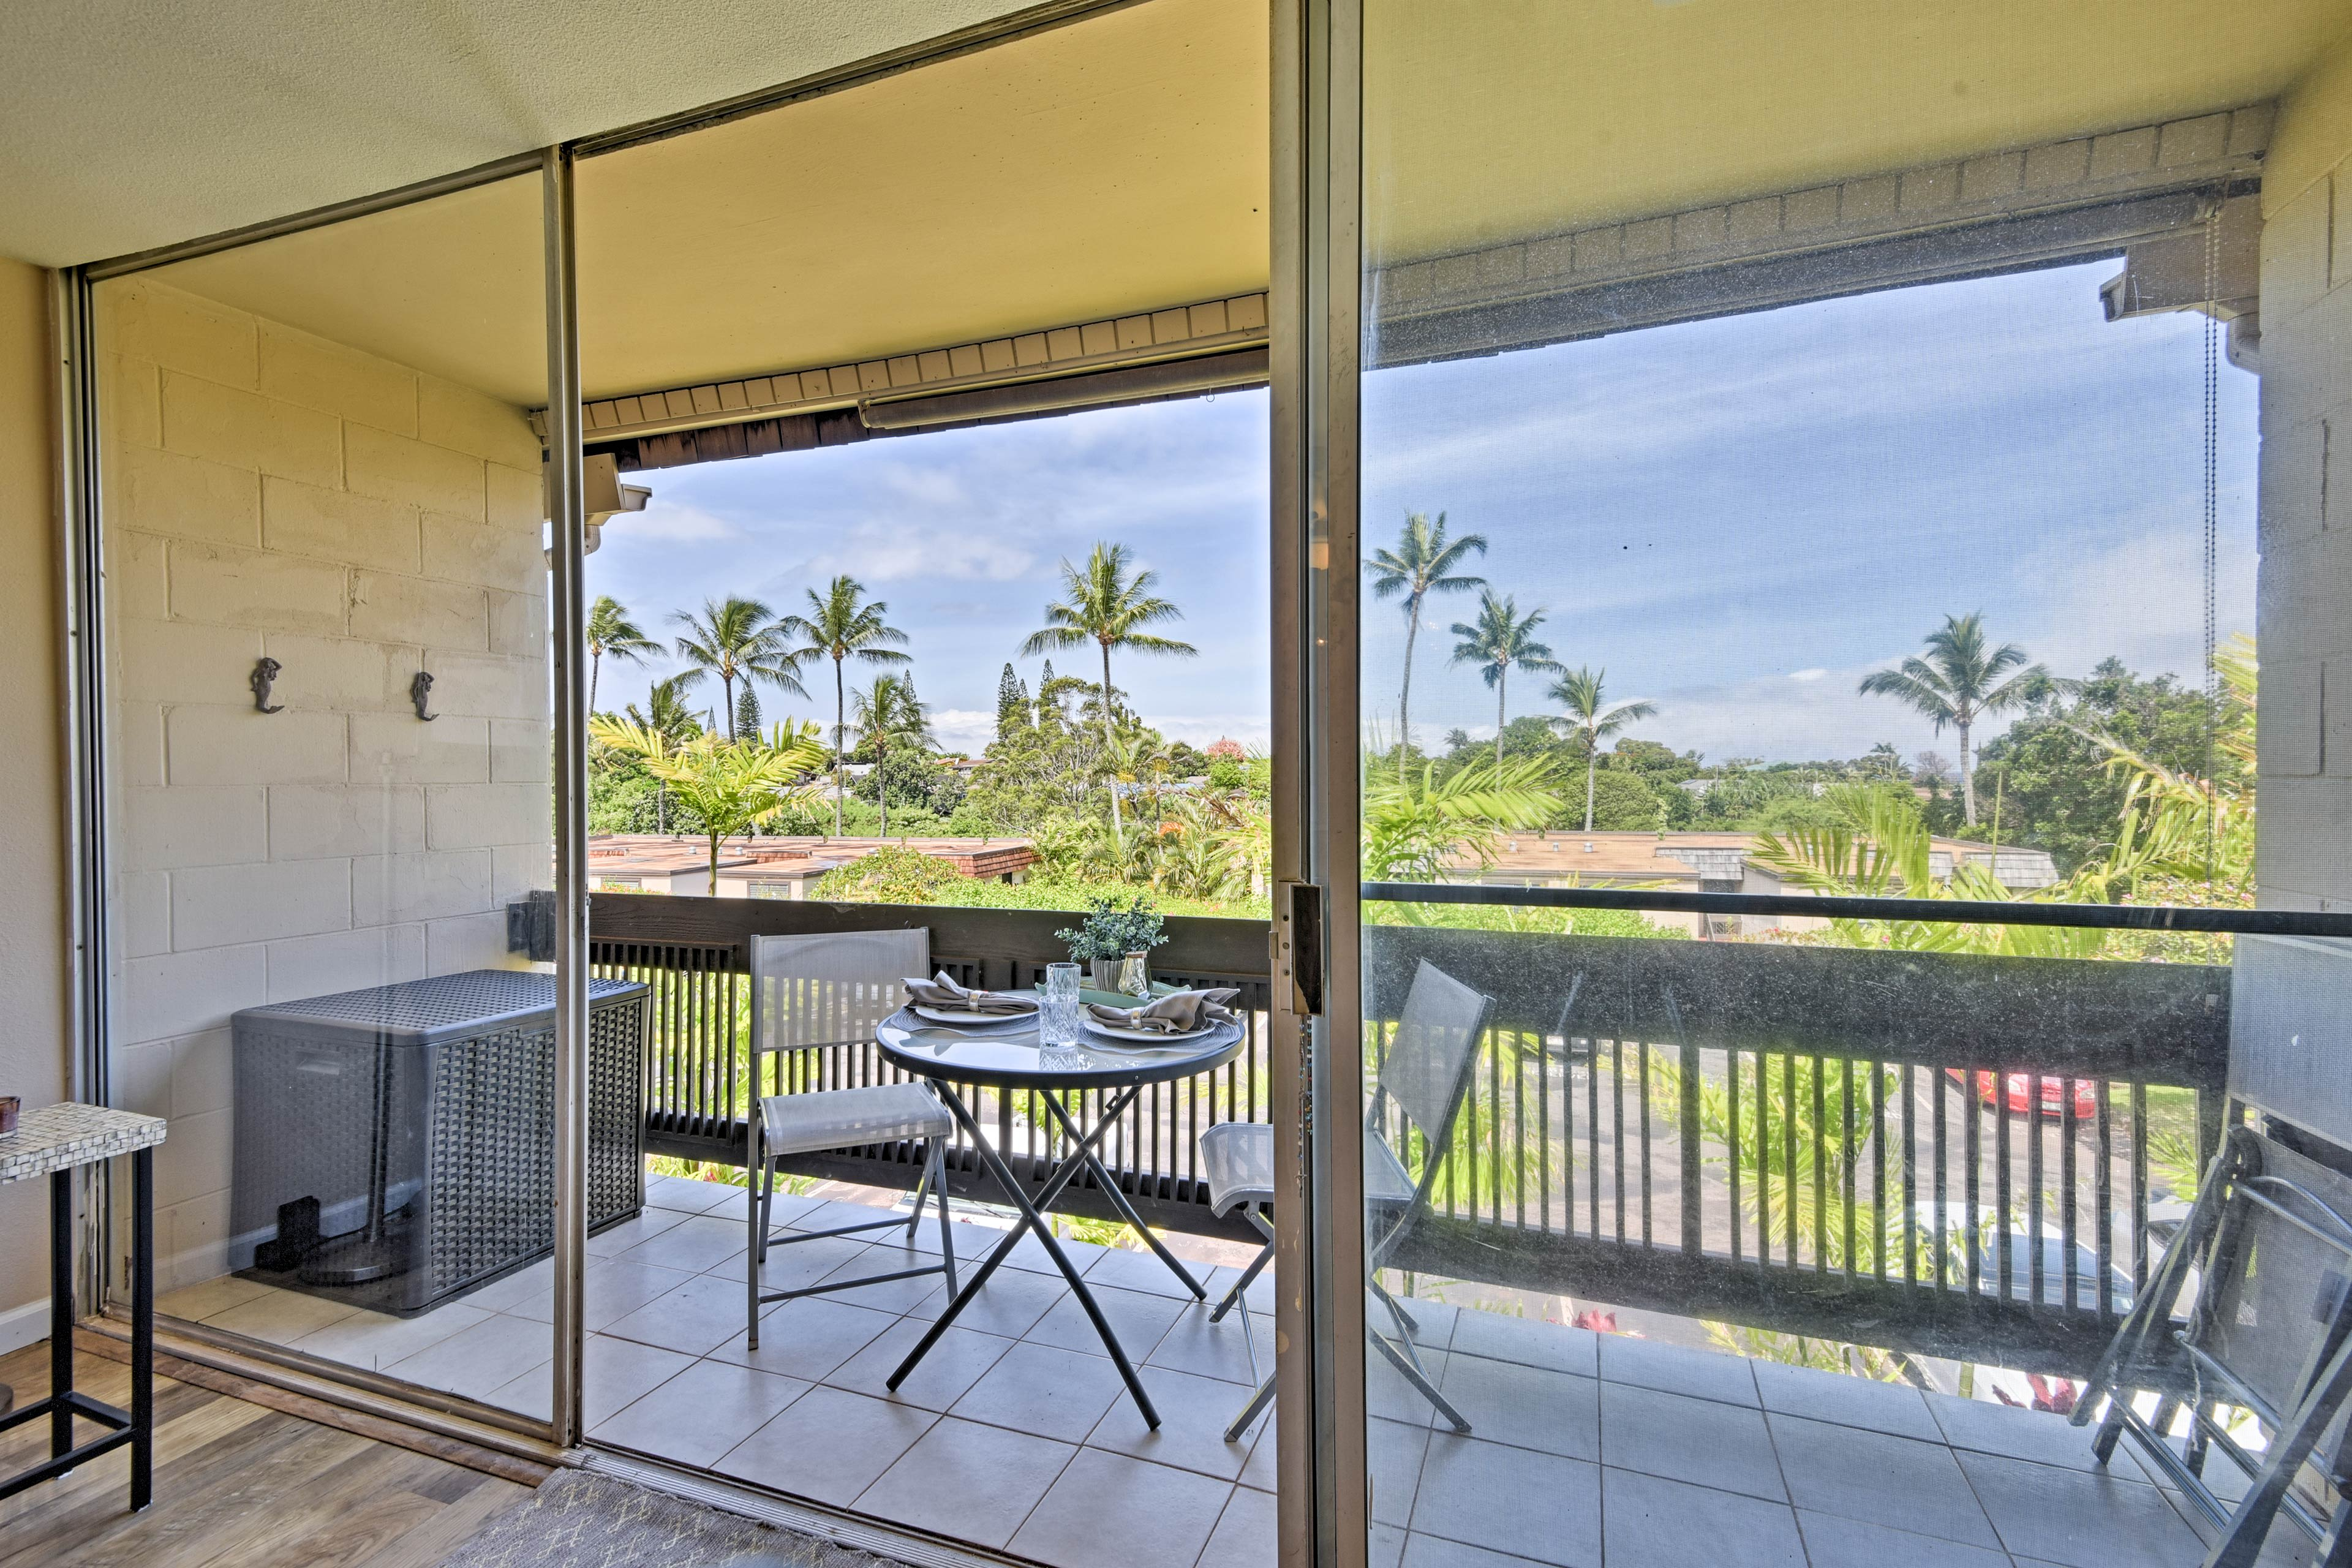 This breezy abode is just 0.5 miles from Napili Bay!